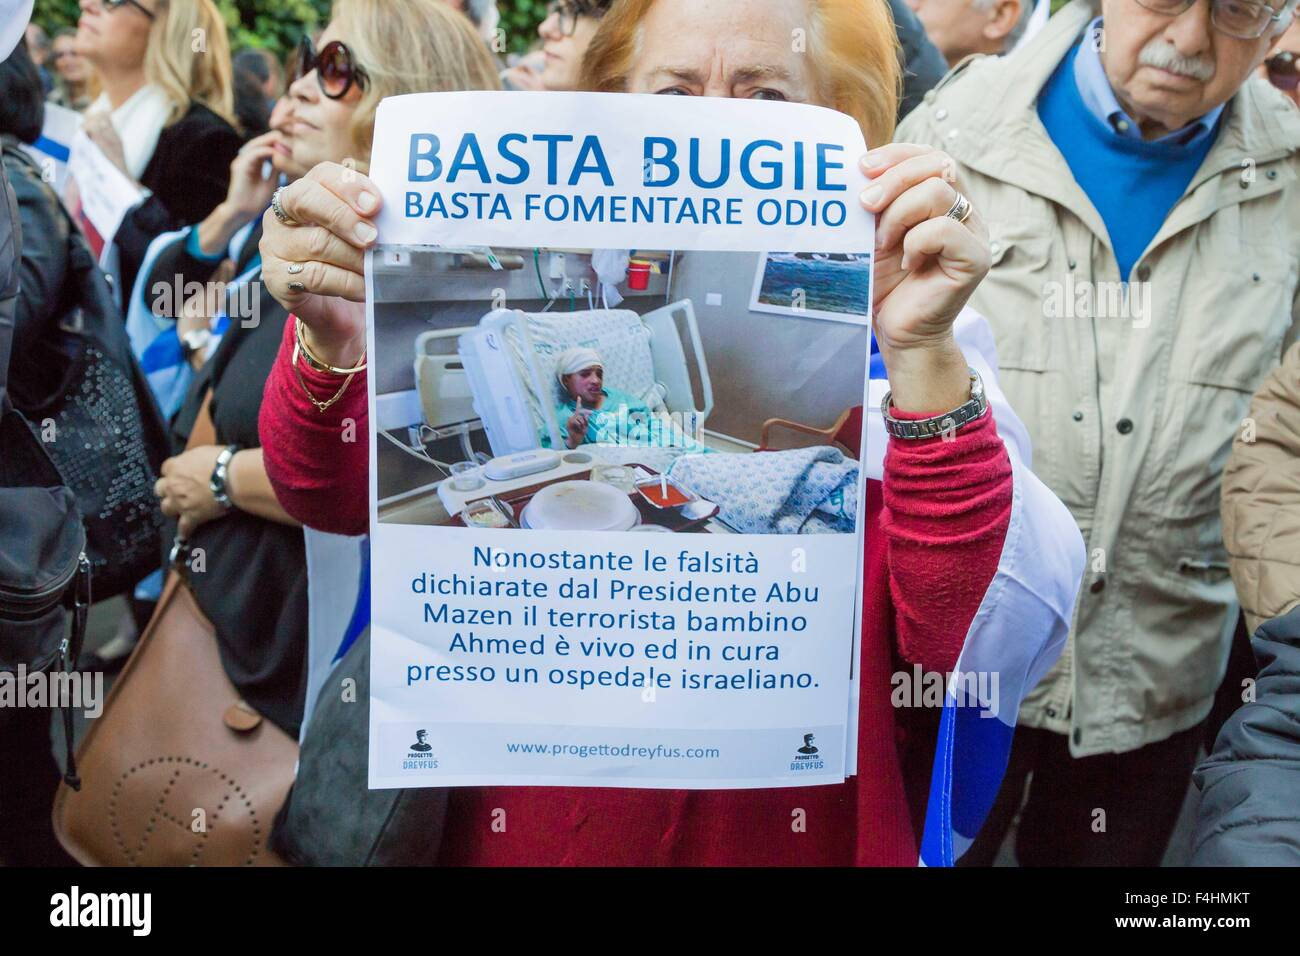 Rome, Italy. 18th Oct, 2015. A Jewish woman shows placard during a protest against the media and the attacks on - Stock Image